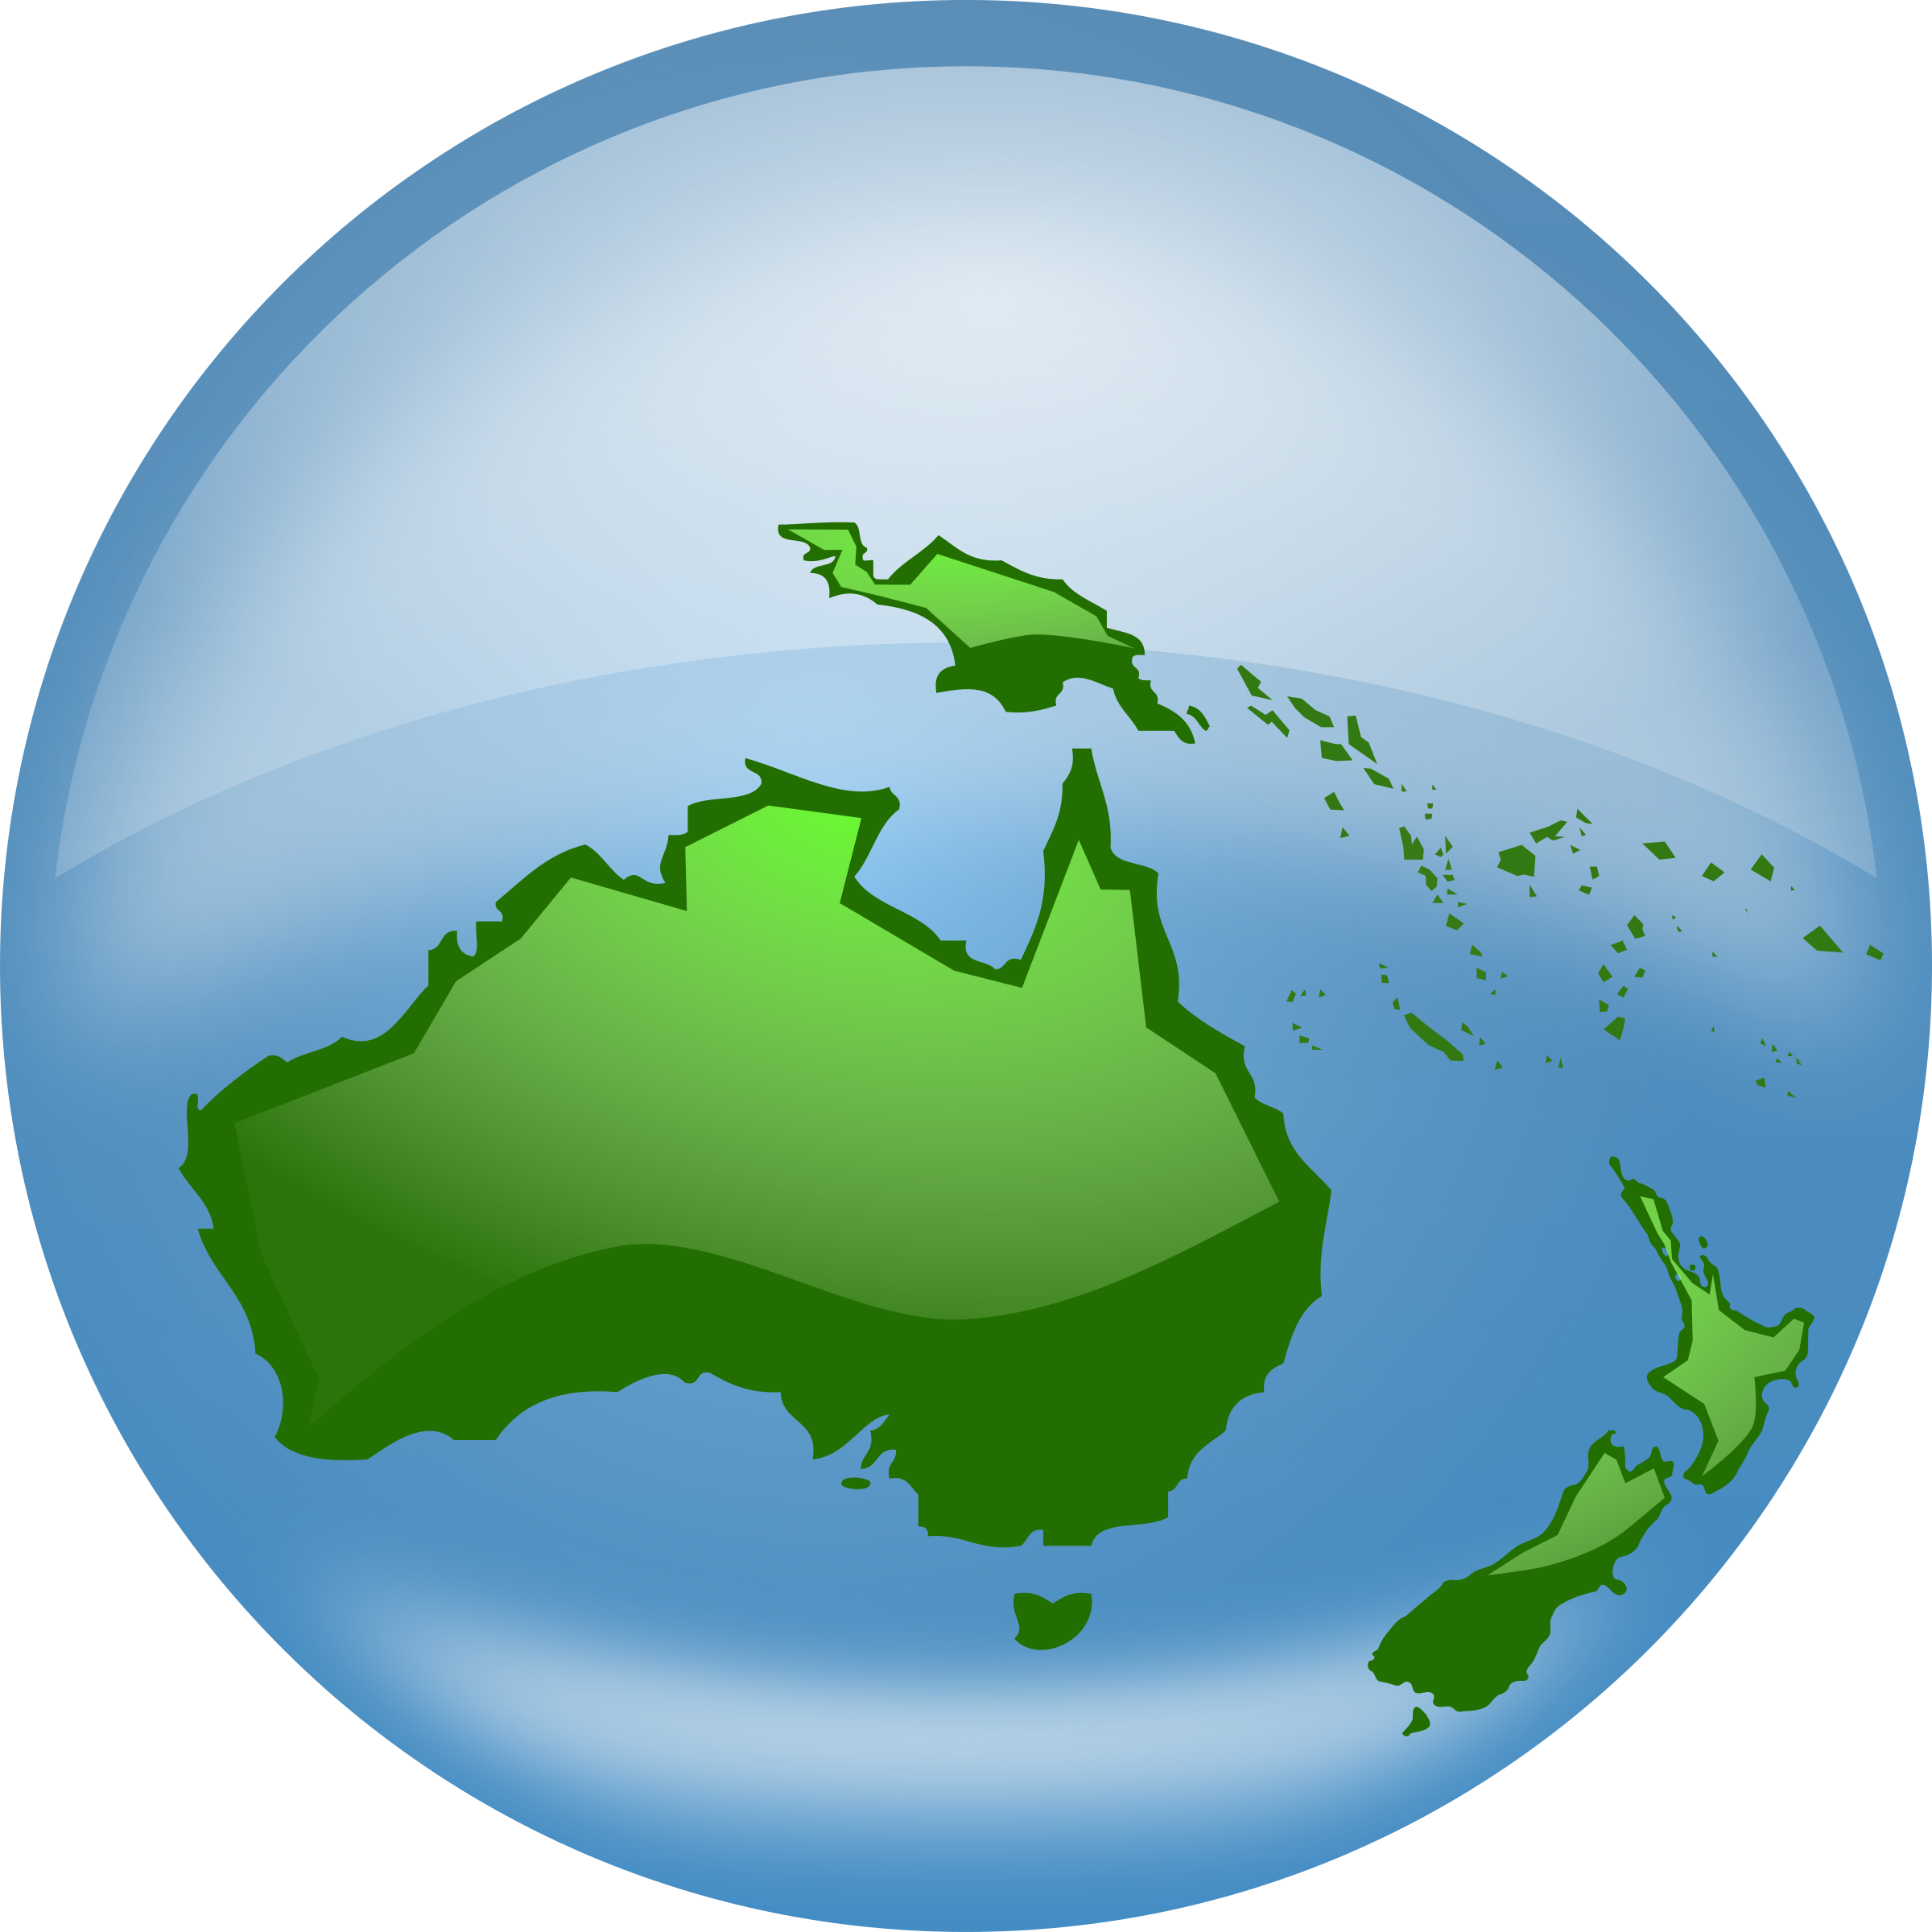 Clipart oceania globe big image png gumiabroncs Image collections